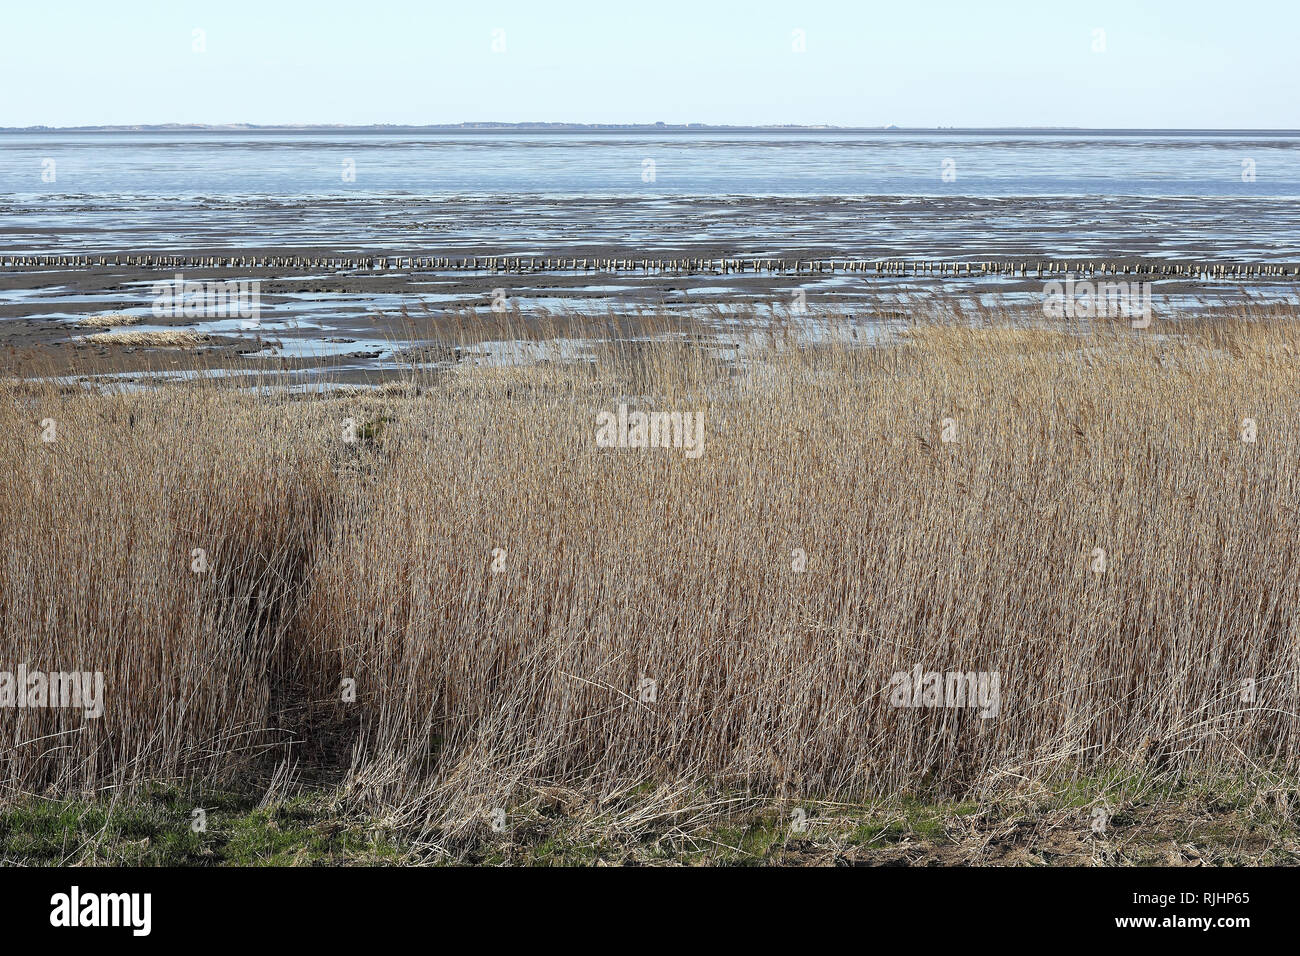 Riparian zone of tideland at the Island of Sylt - Stock Image